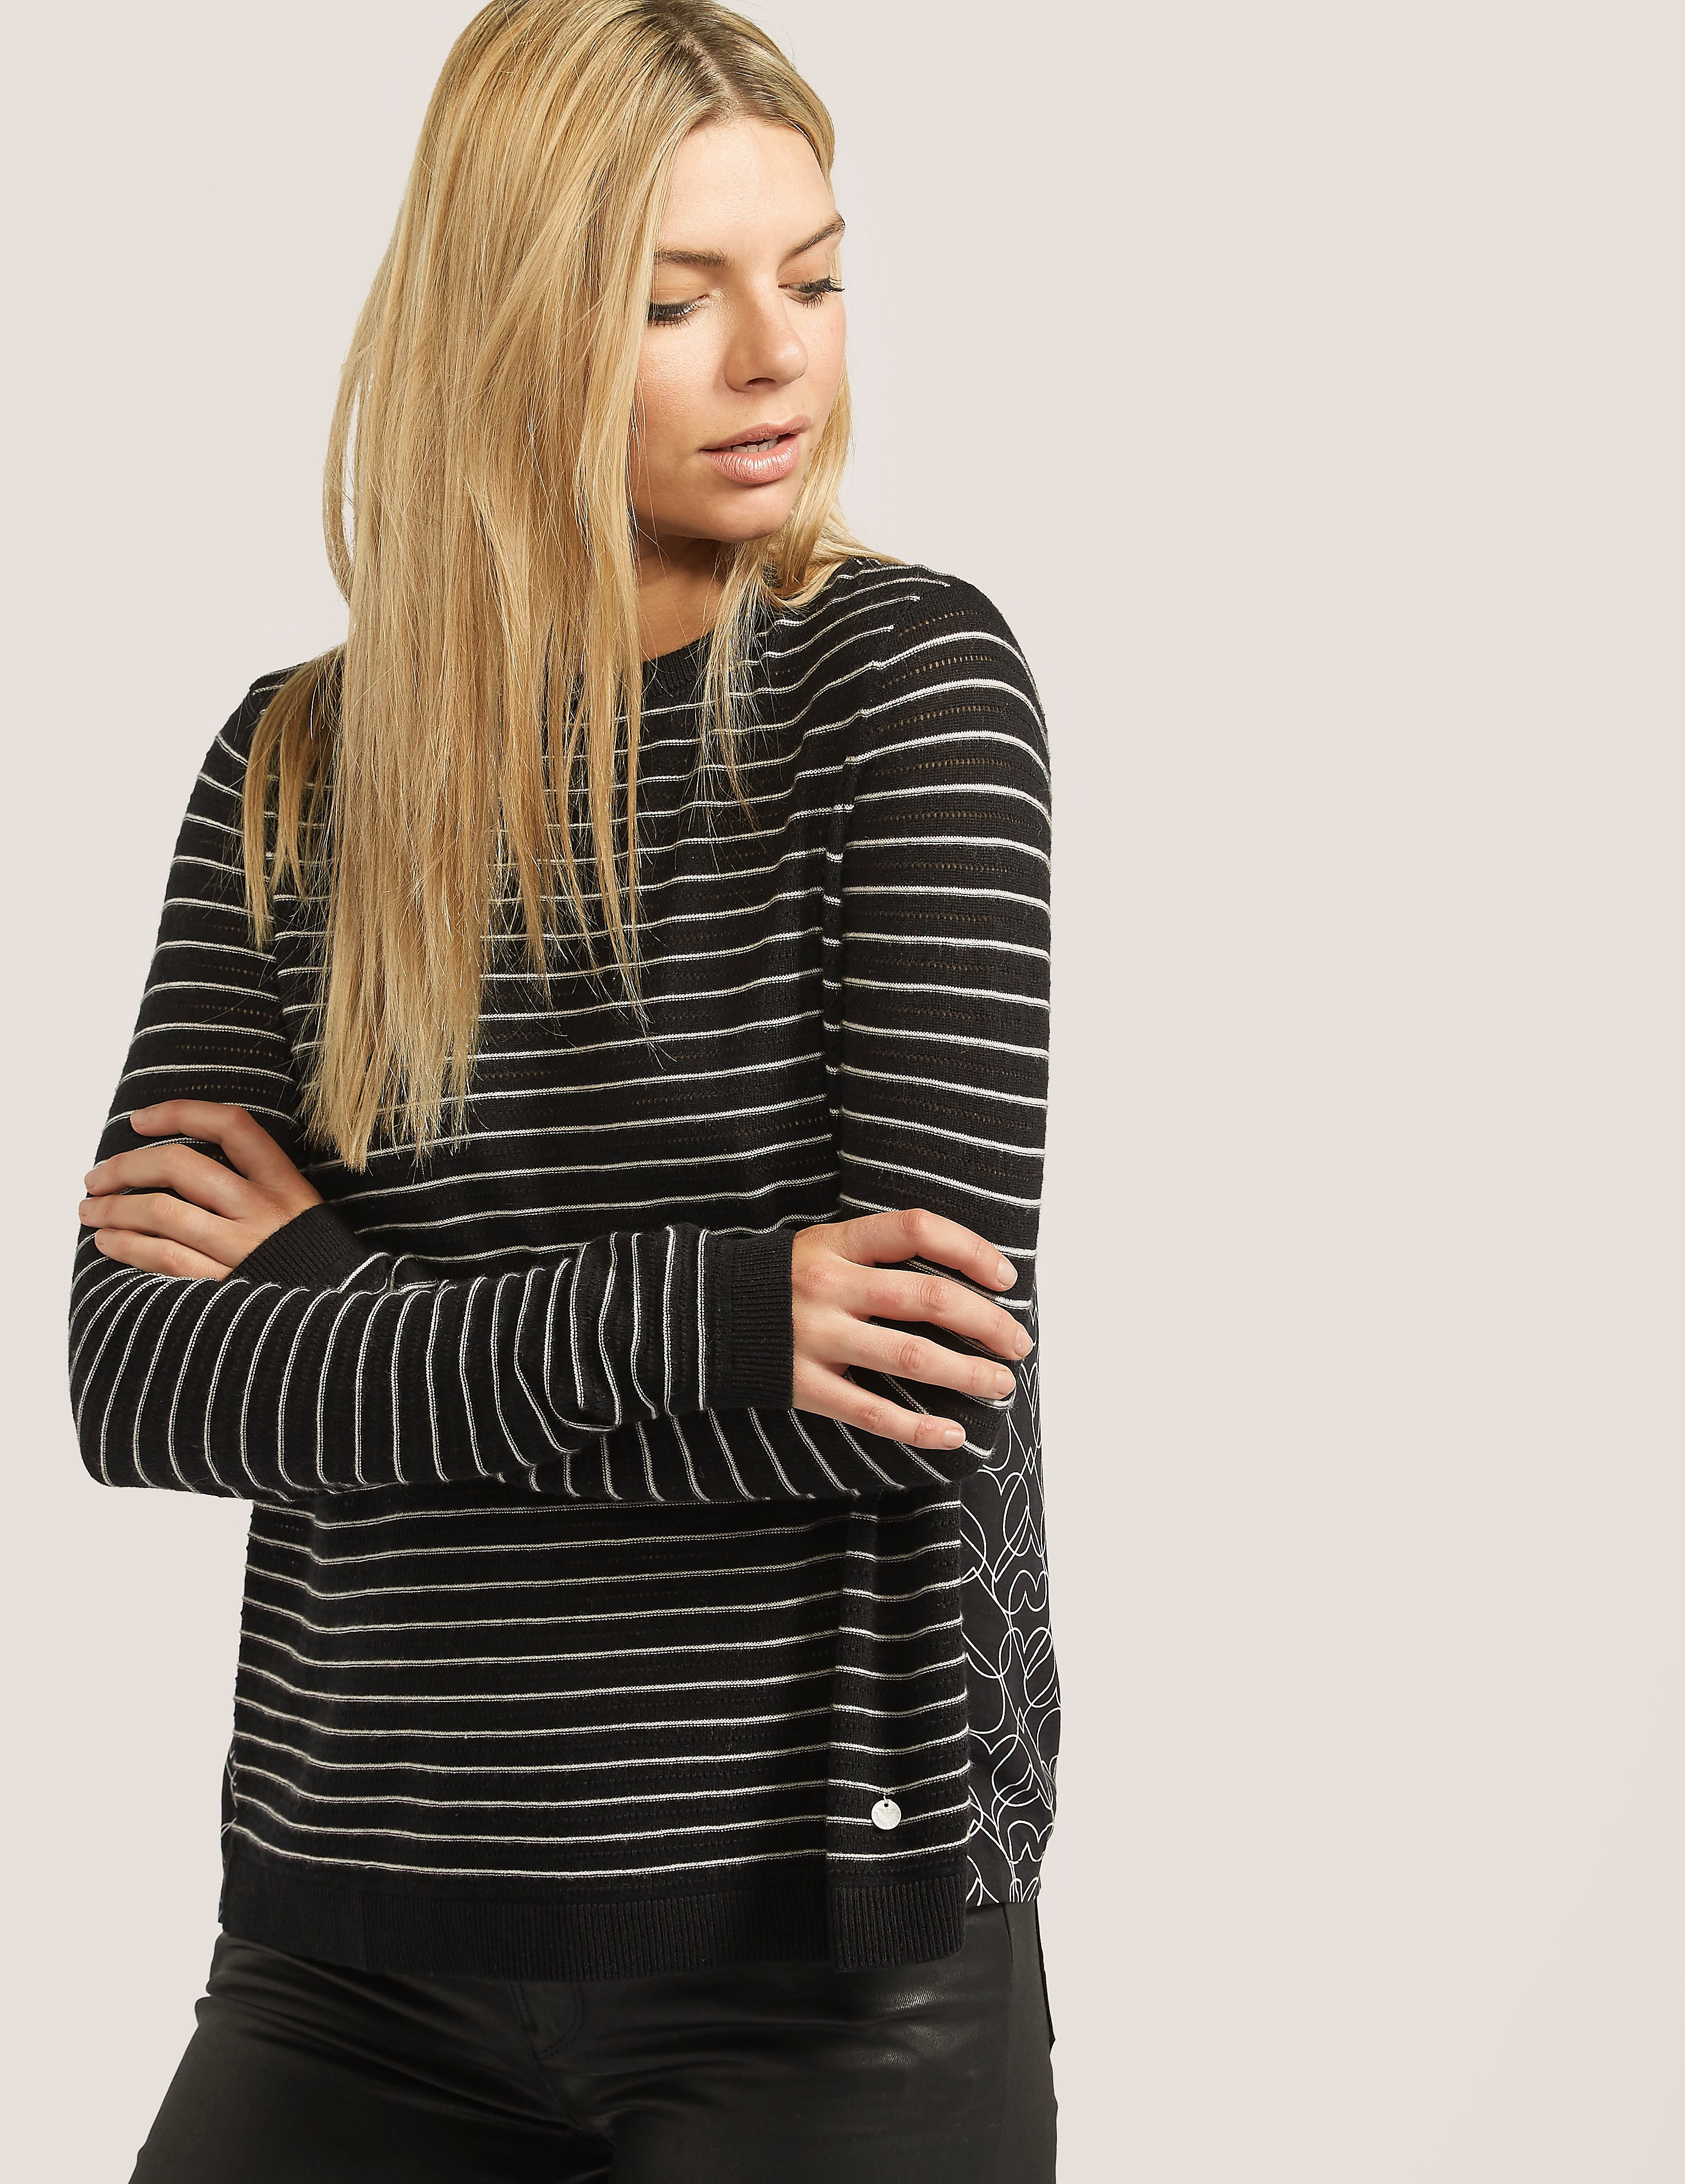 Armani Jeans Stripe Knit Heart